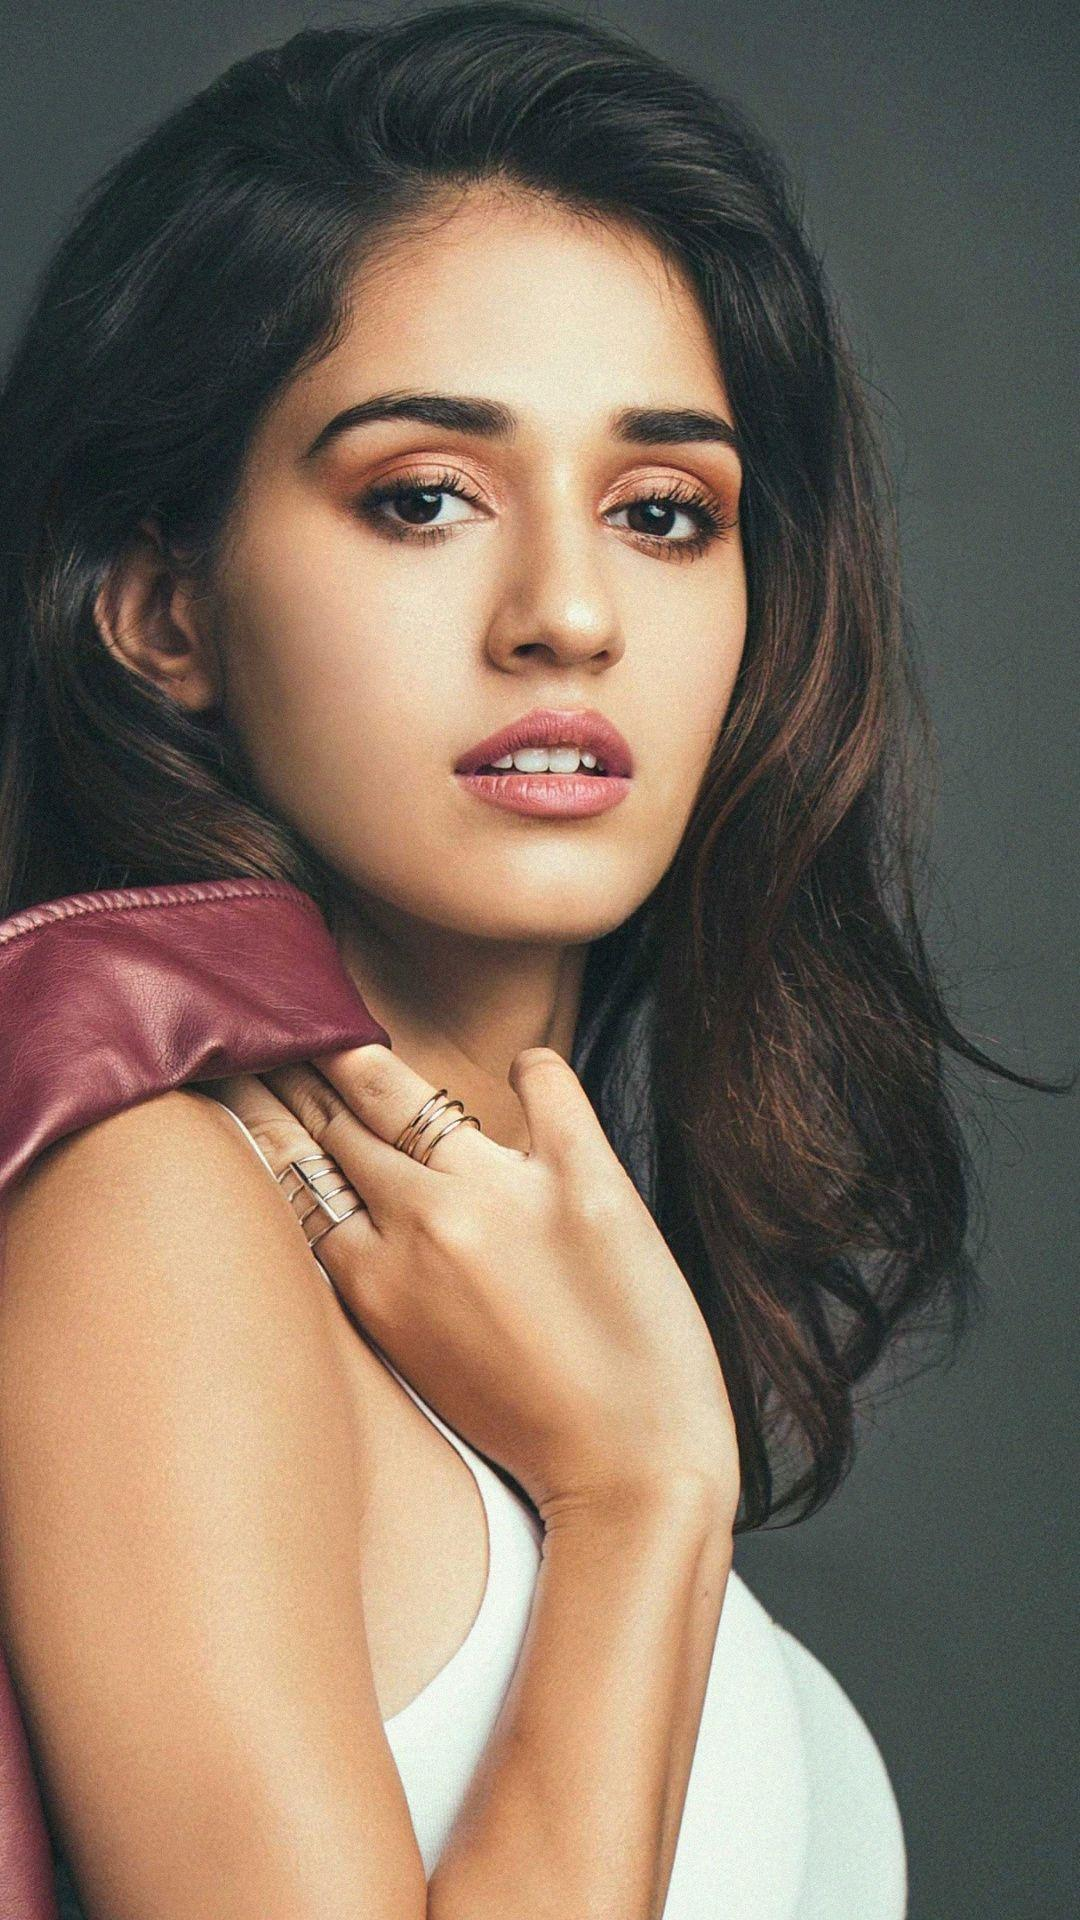 Bollywood Actresses 2019 Wallpapers Wallpaper Cave